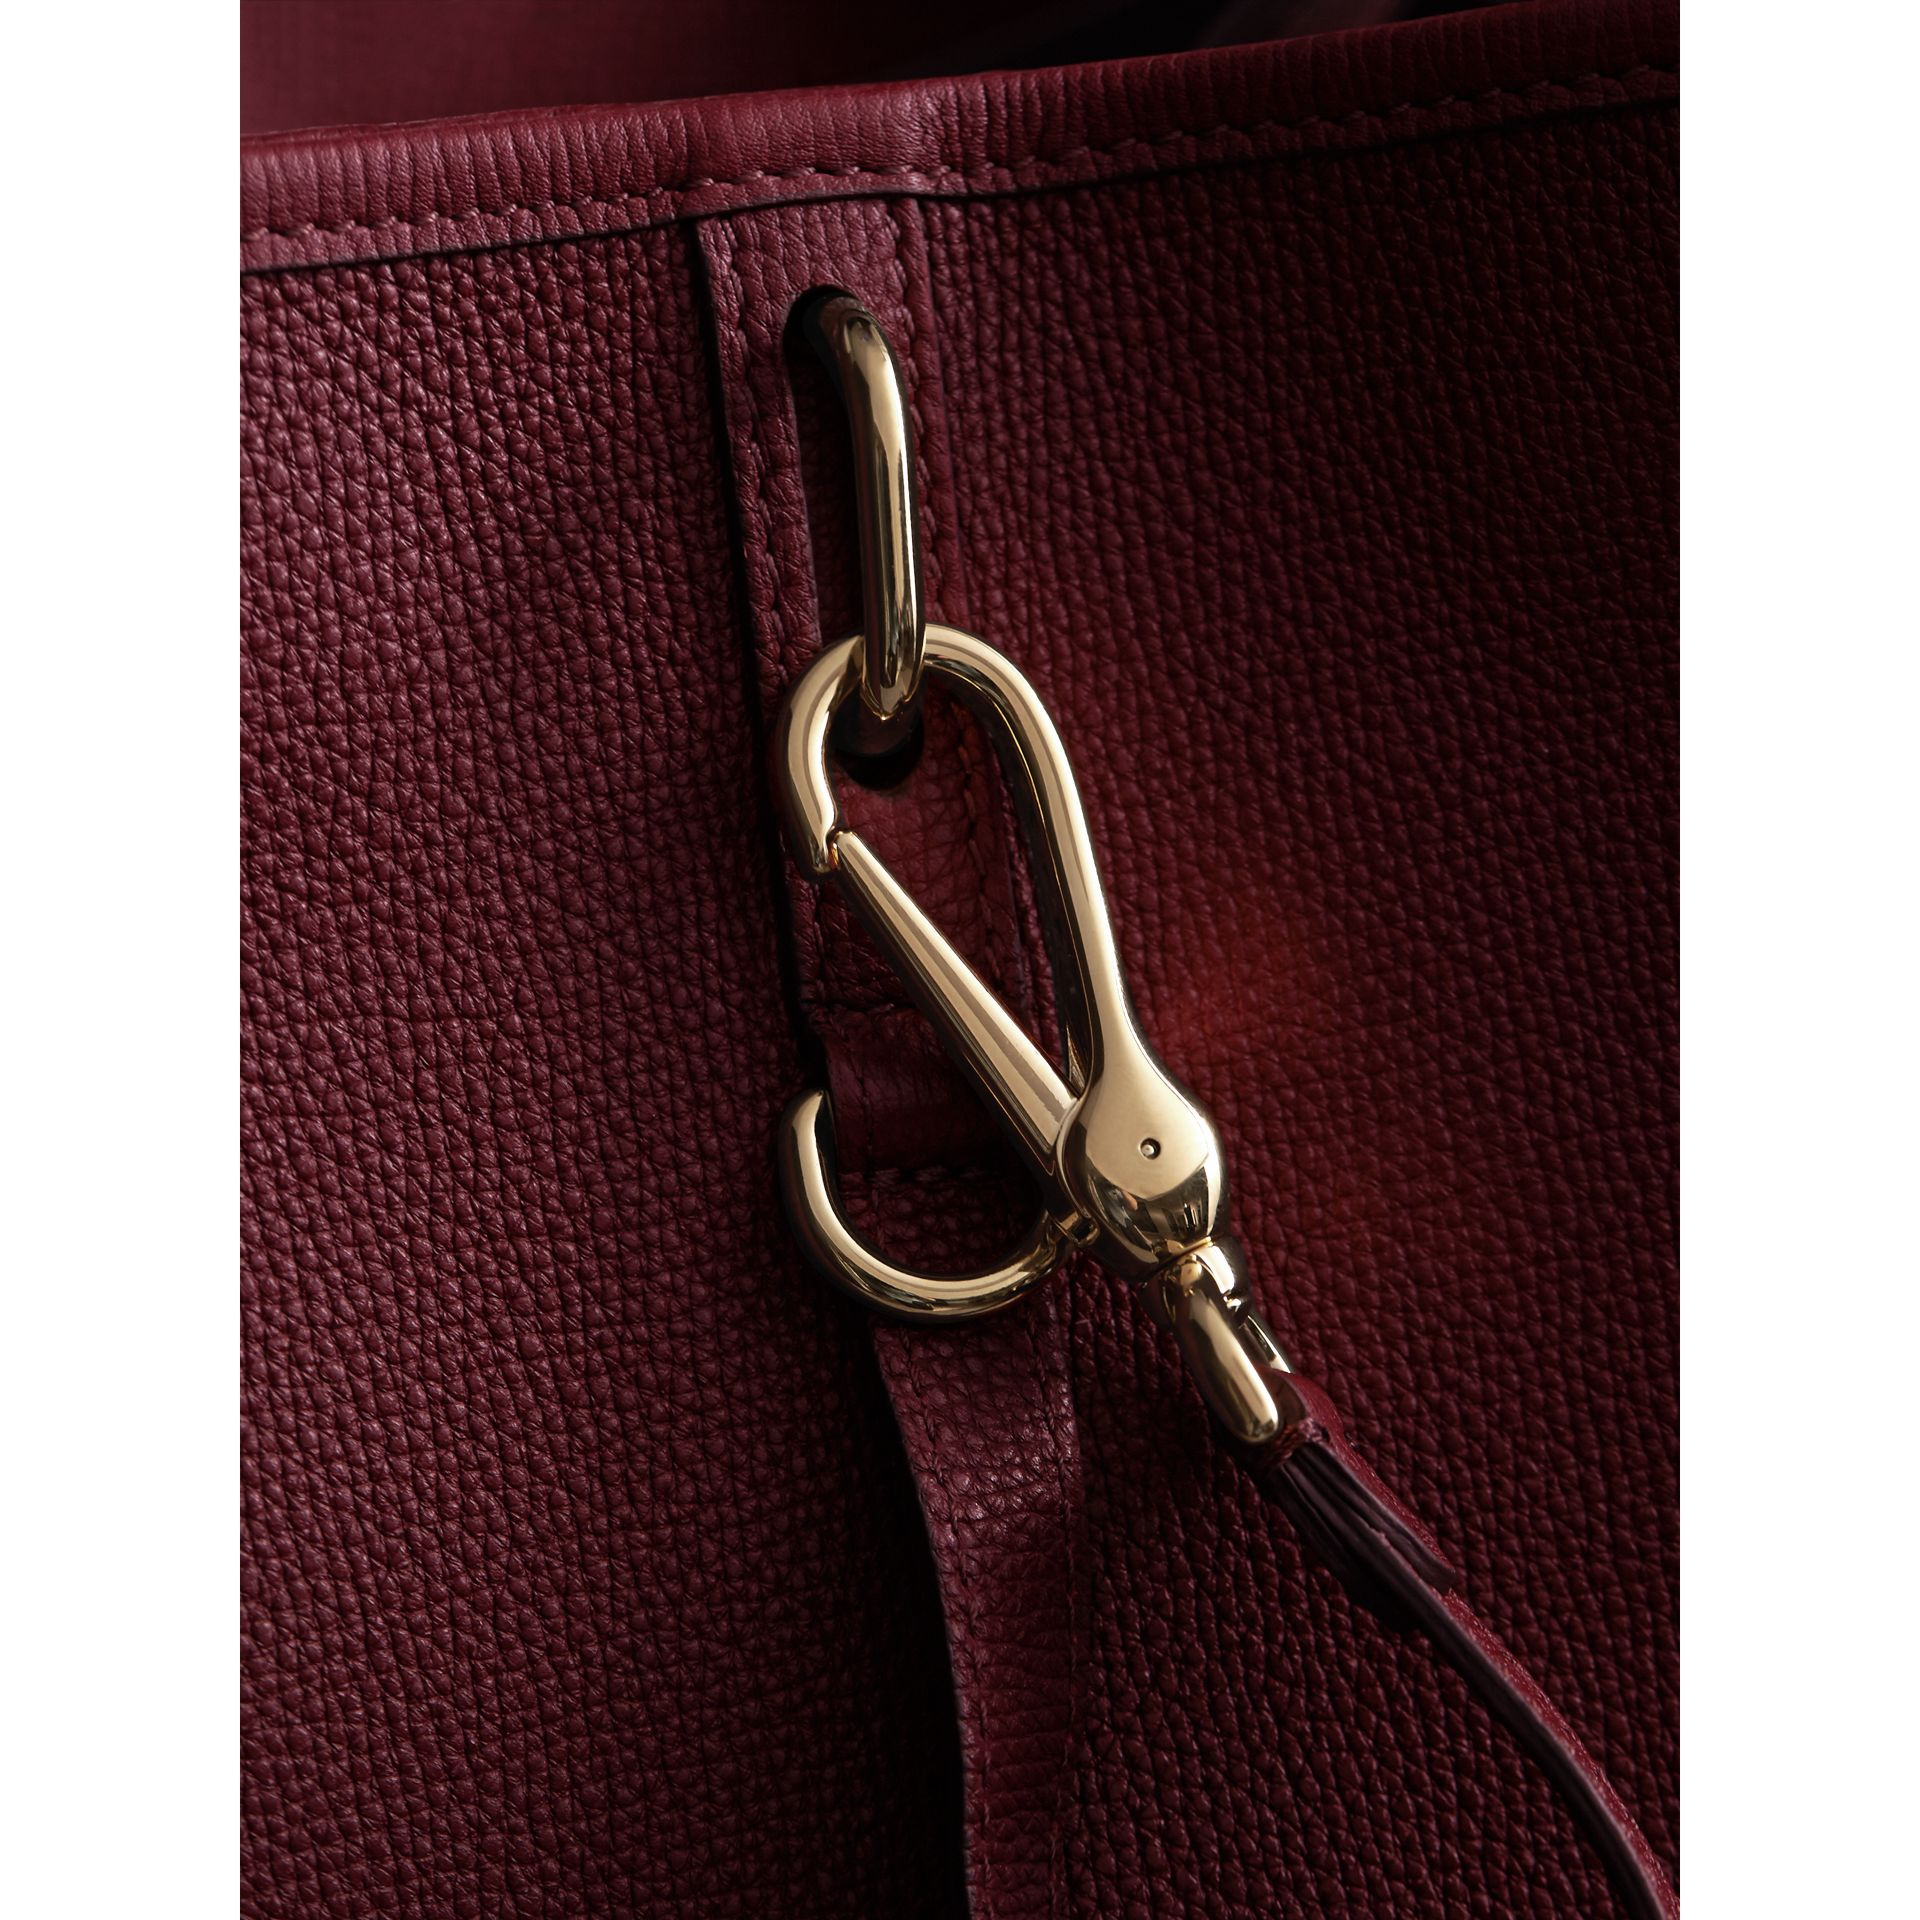 Medium Grainy Leather Tote Bag in Mahogany Red - Women | Burberry United States - gallery image 2